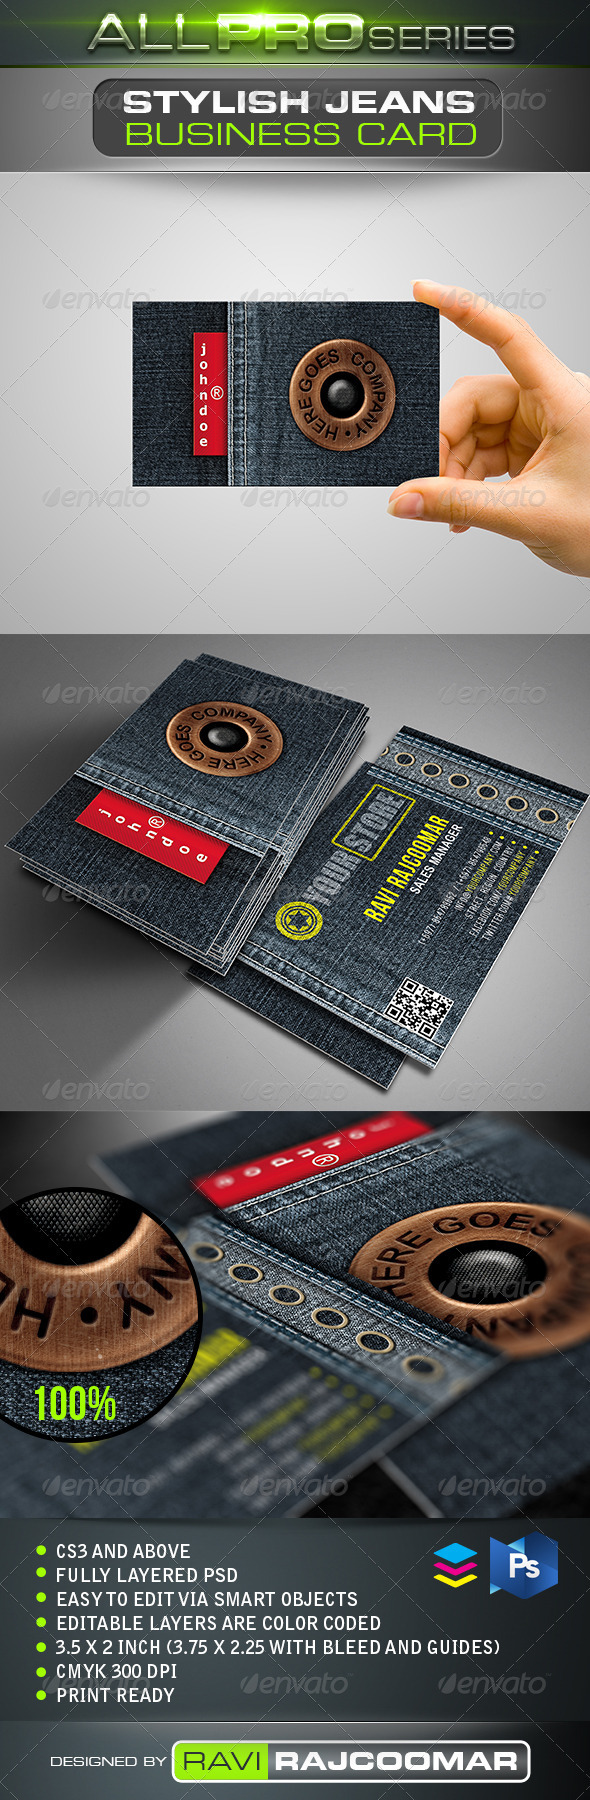 Stylish Jeans Business Card - Real Objects Business Cards